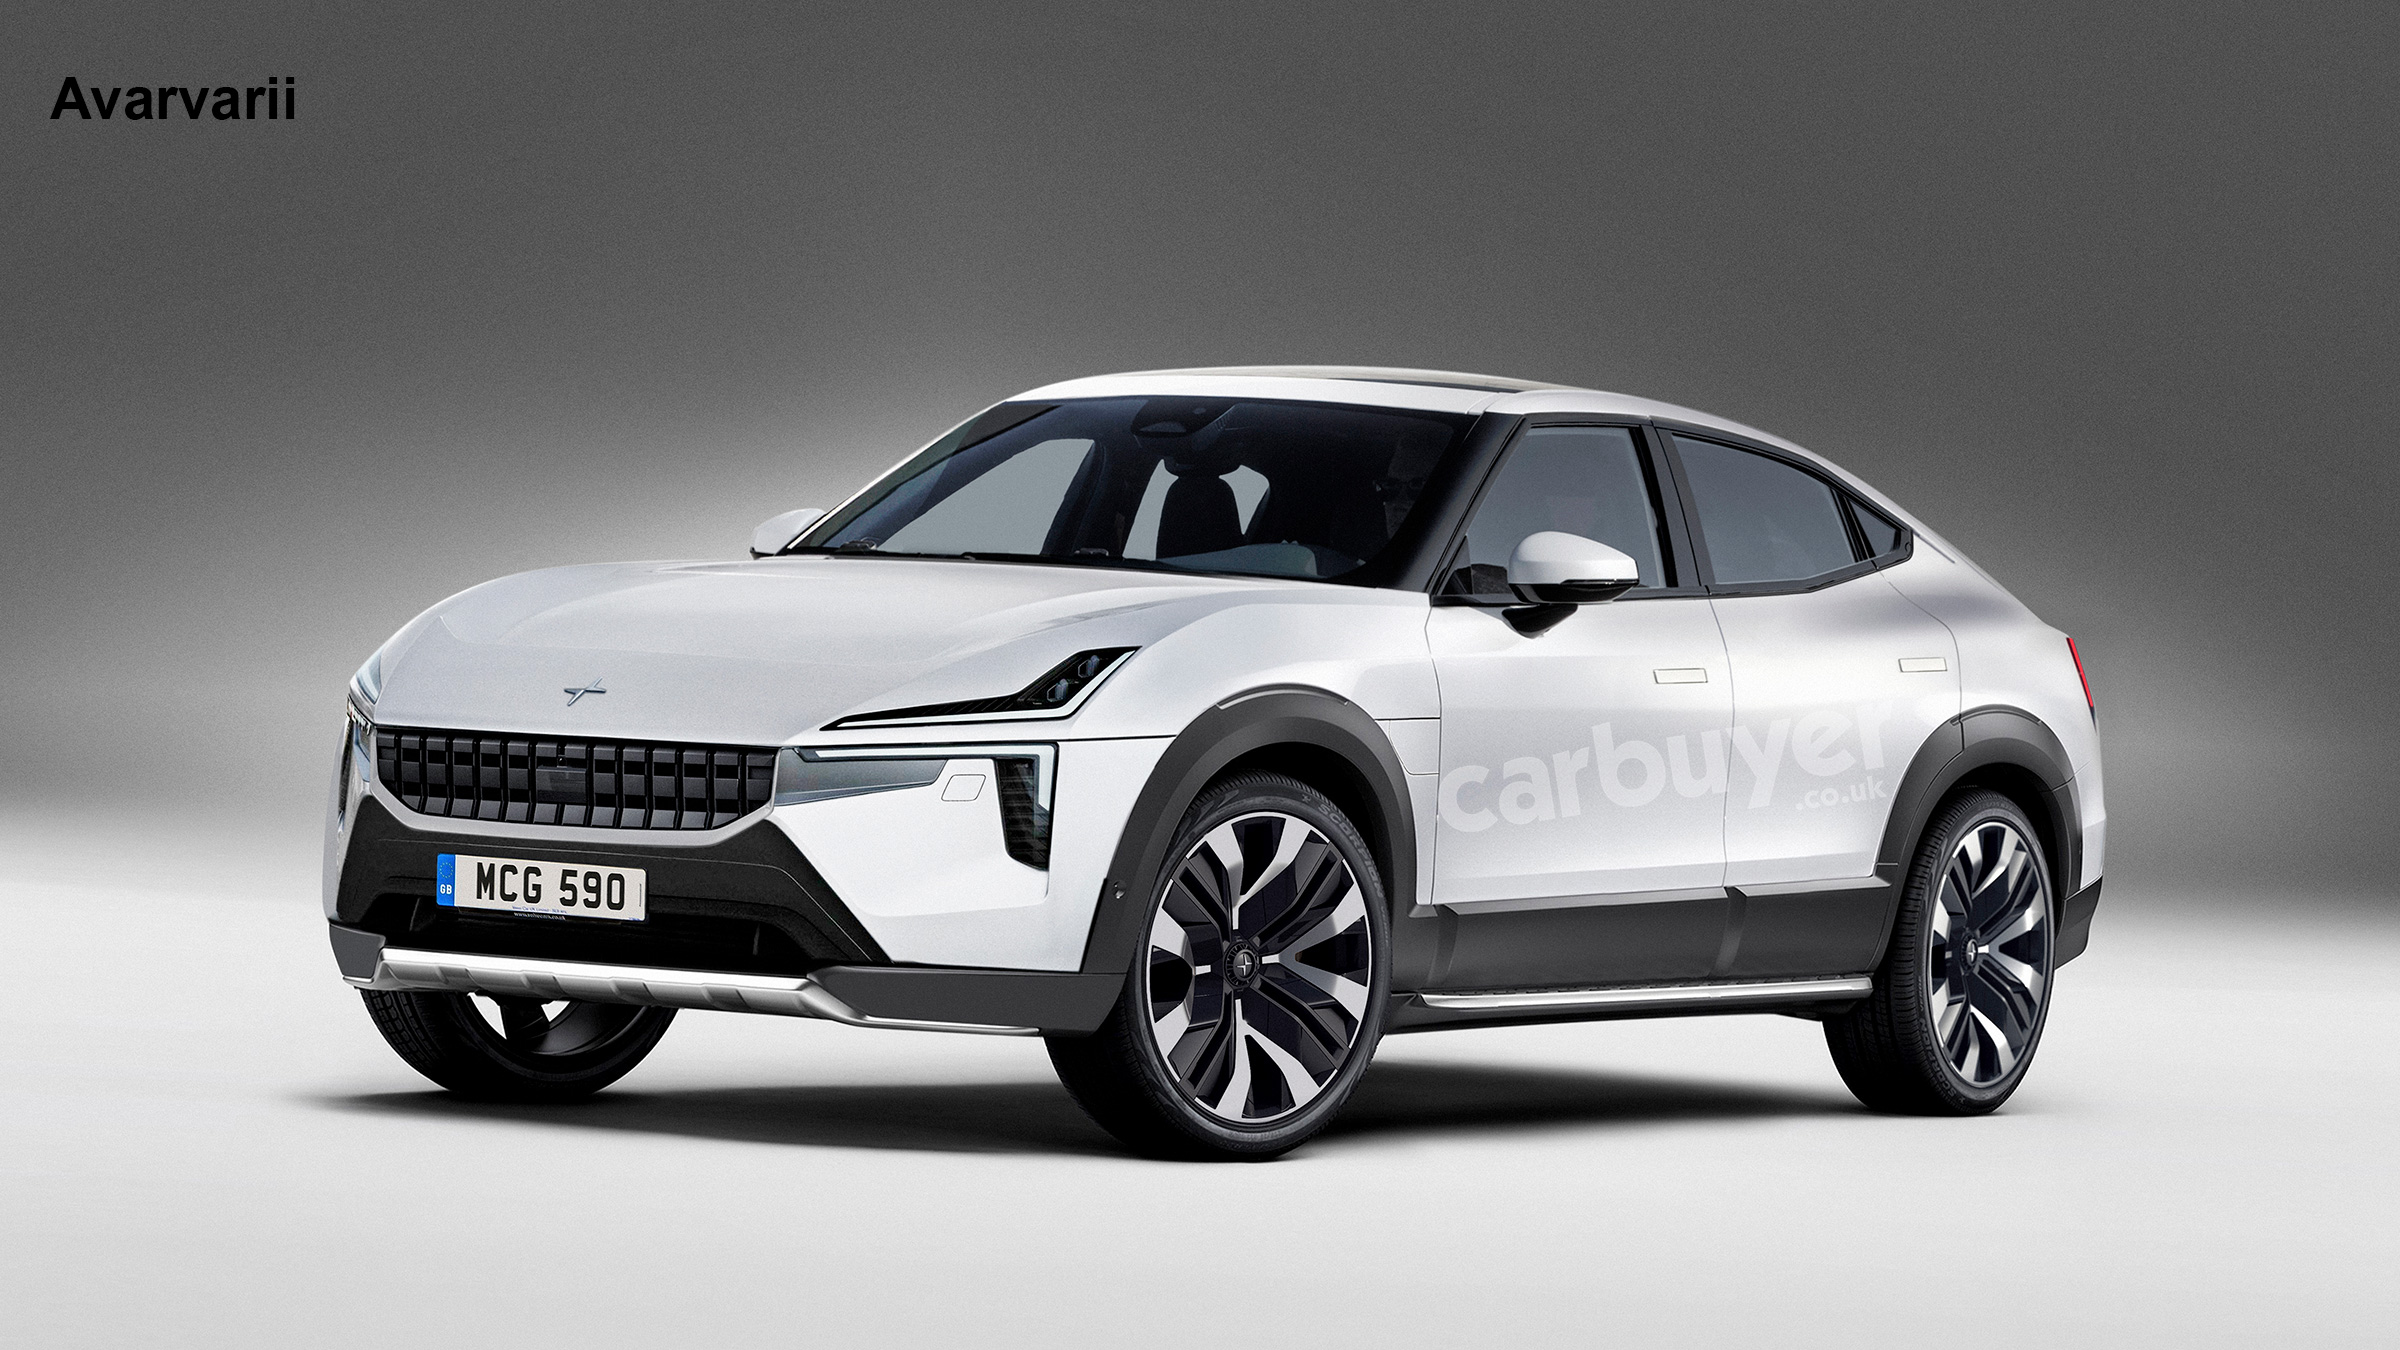 5 Polestar 5 electric SUV previewed in exclusive images  Carbuyer